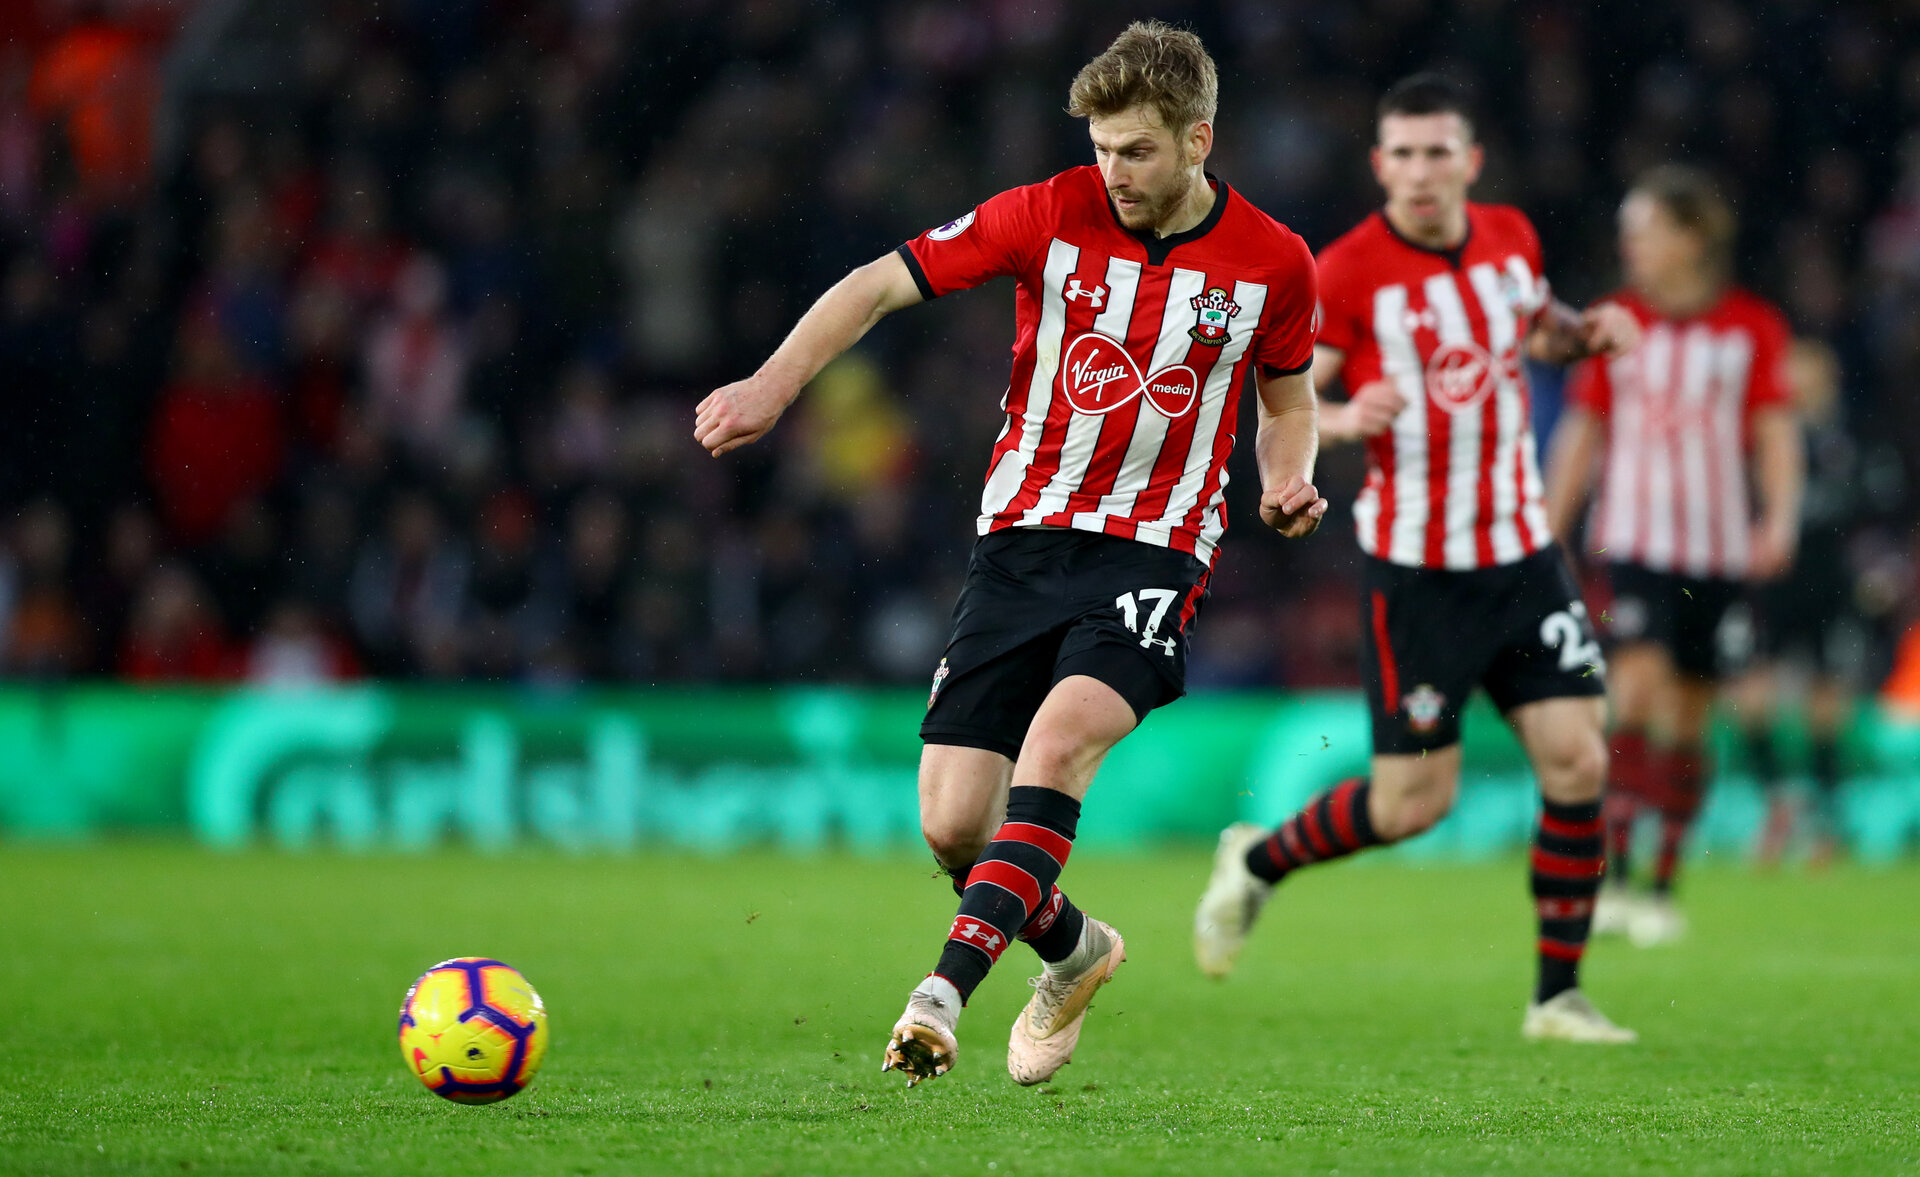 SOUTHAMPTON, ENGLAND - DECEMBER 16: Stuart Armstrong of Southampton during the Premier League match between Southampton FC and Arsenal FC at St Mary's Stadium on December 15, 2018 in Southampton, United Kingdom. (Photo by Matt Watson/Southampton FC via Getty Images)